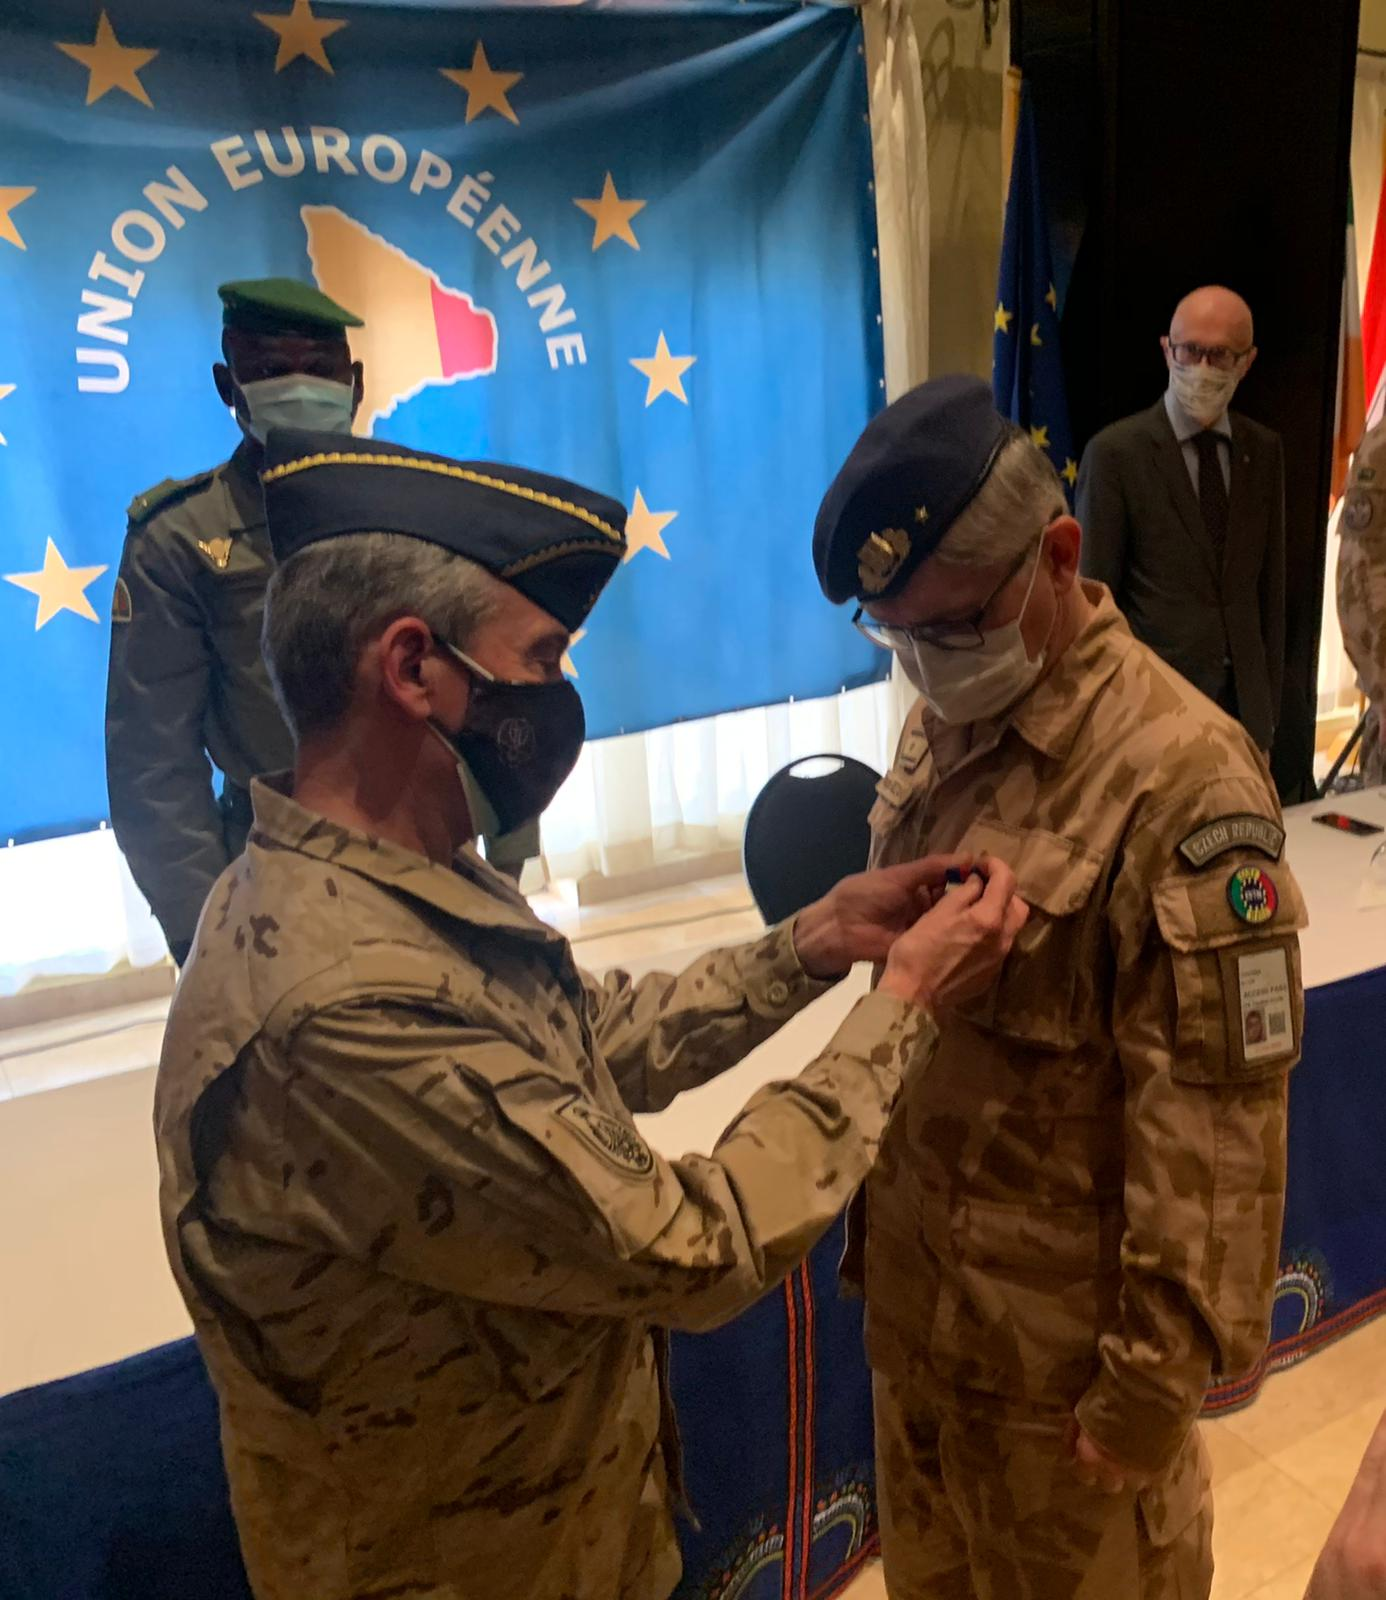 Spanish CHOD gives the EU meritorious medal to the outgoing Commander